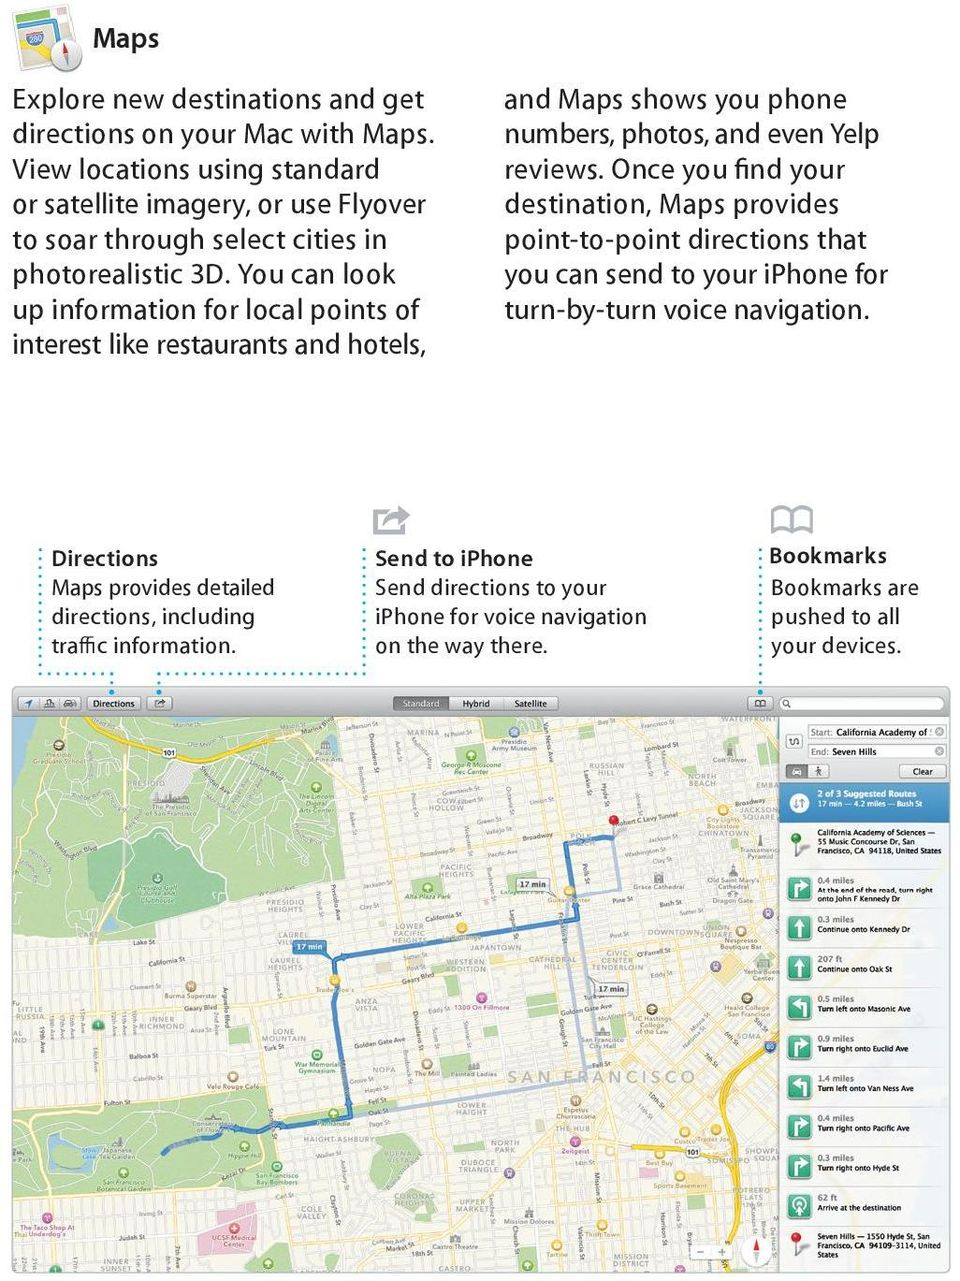 You can look up information for local points of interest like restaurants and hotels, and Maps shows you phone numbers, photos, and even Yelp reviews.